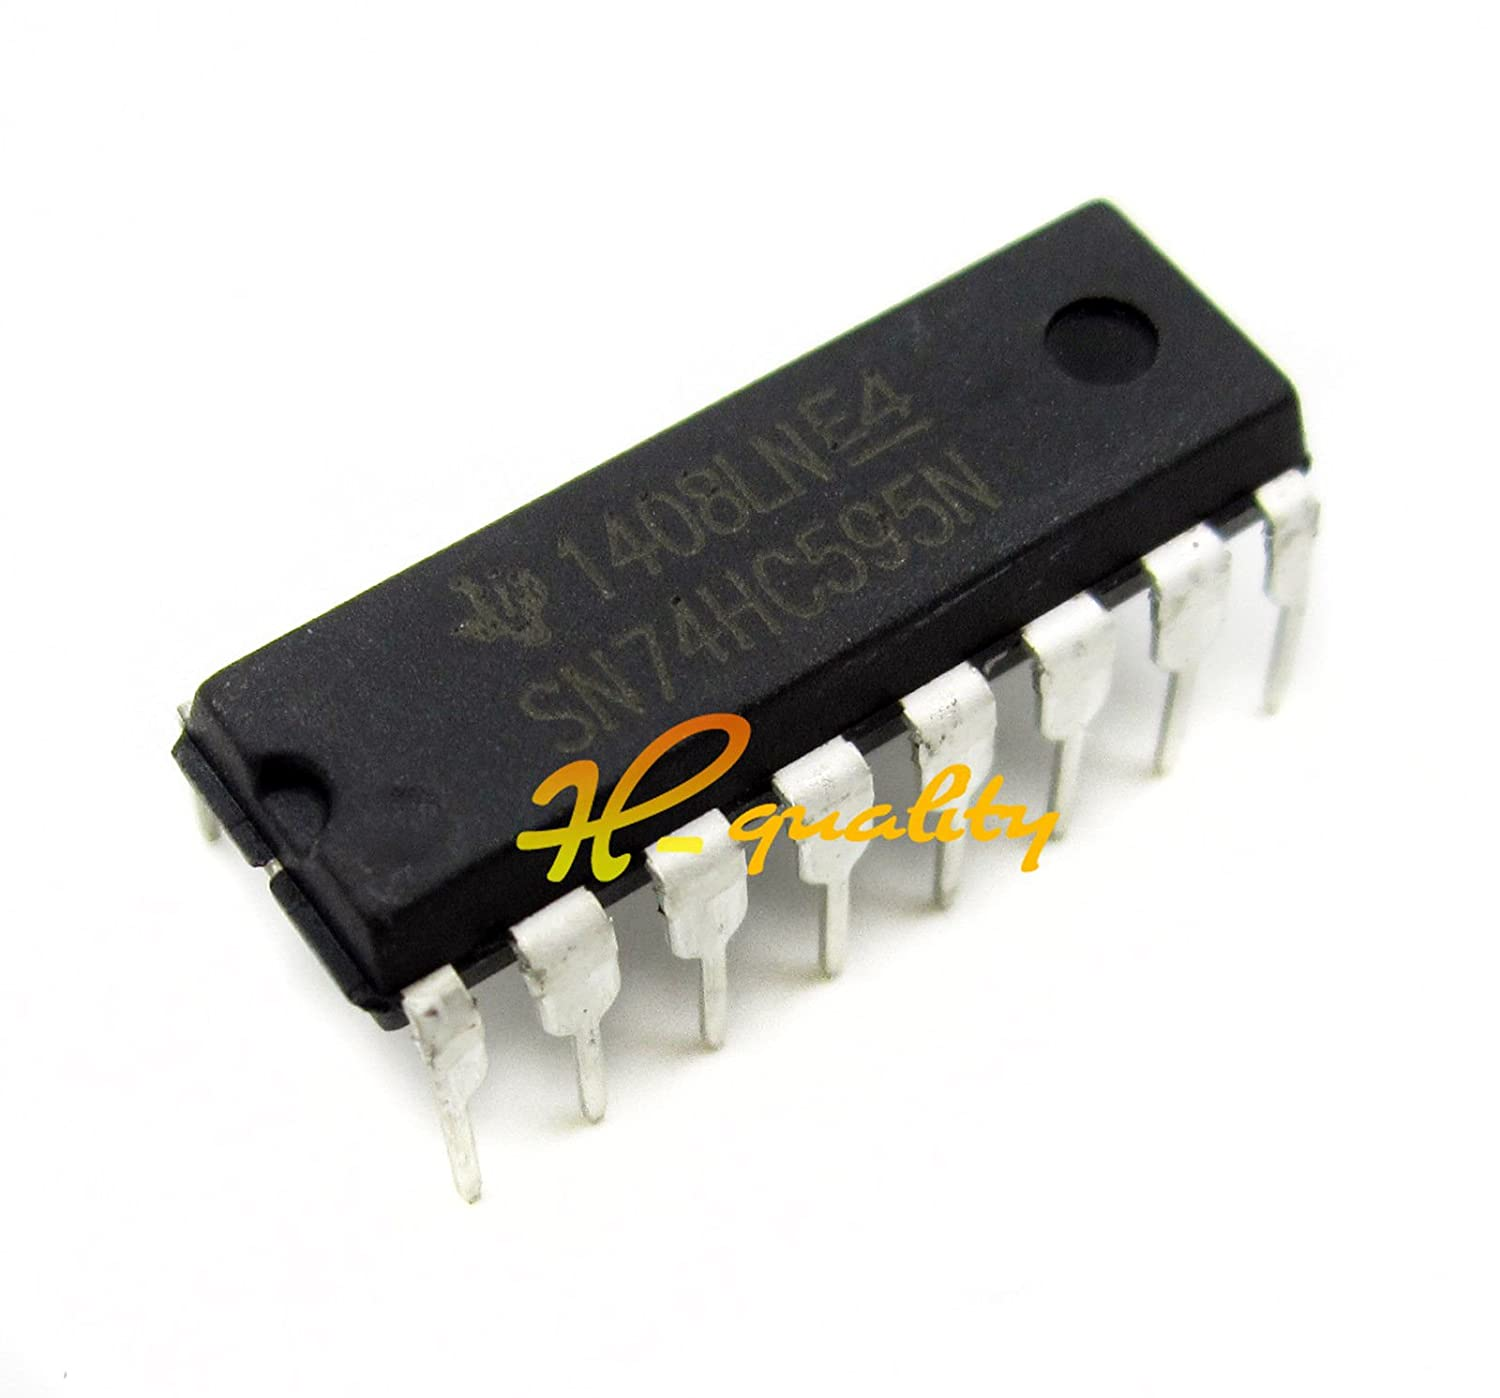 Sodial R Nacht25pcs 74hc595 Ic 8 Bit Shift Register Dip 16 Texas Stk Audio 60w Kreis W Pins Elektronik